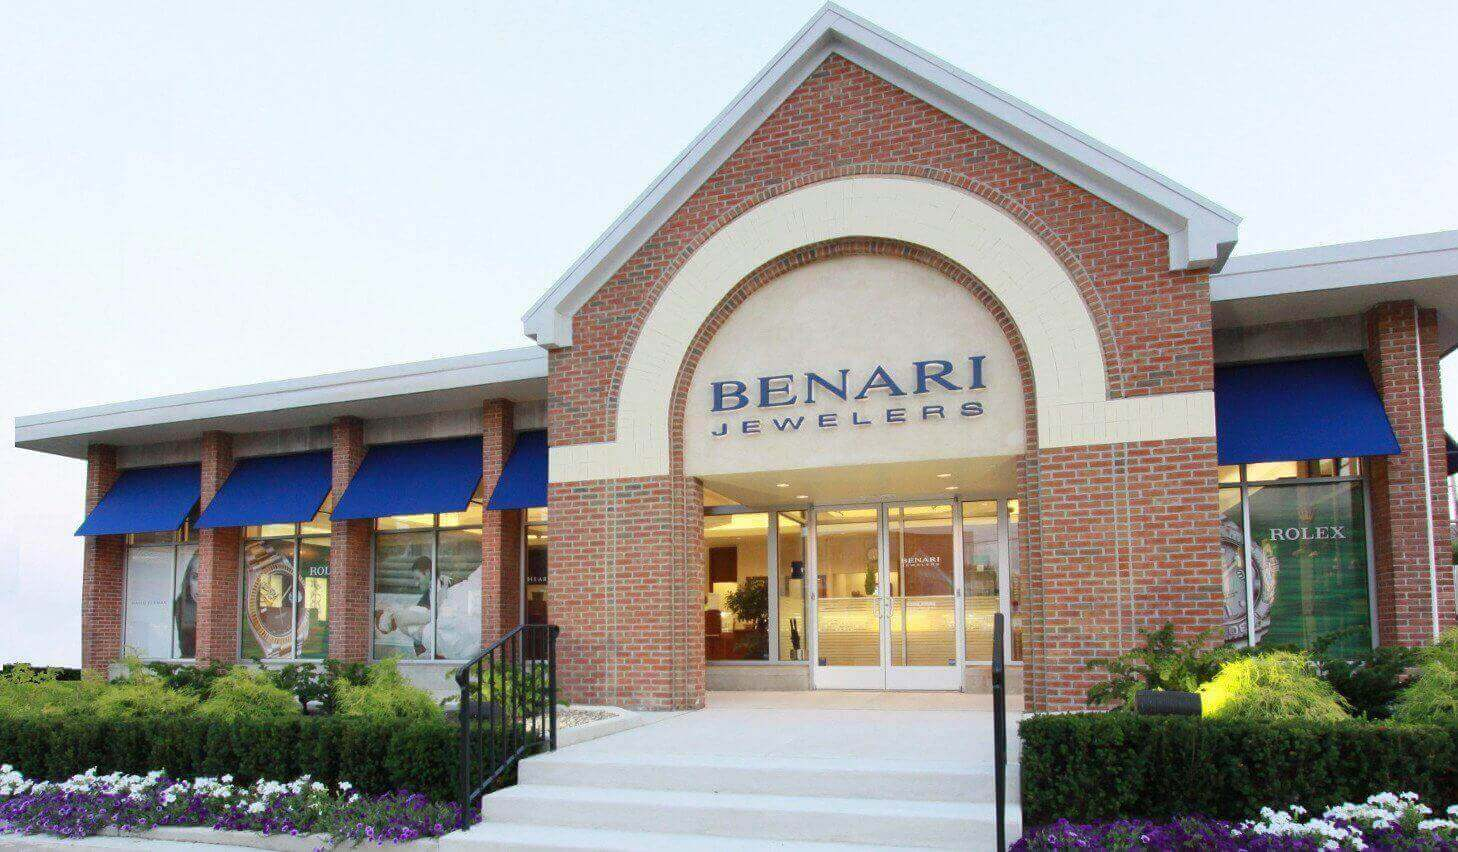 BENARI JEWELERS' Tacori Trunk Show is coming this April 13th and 14th